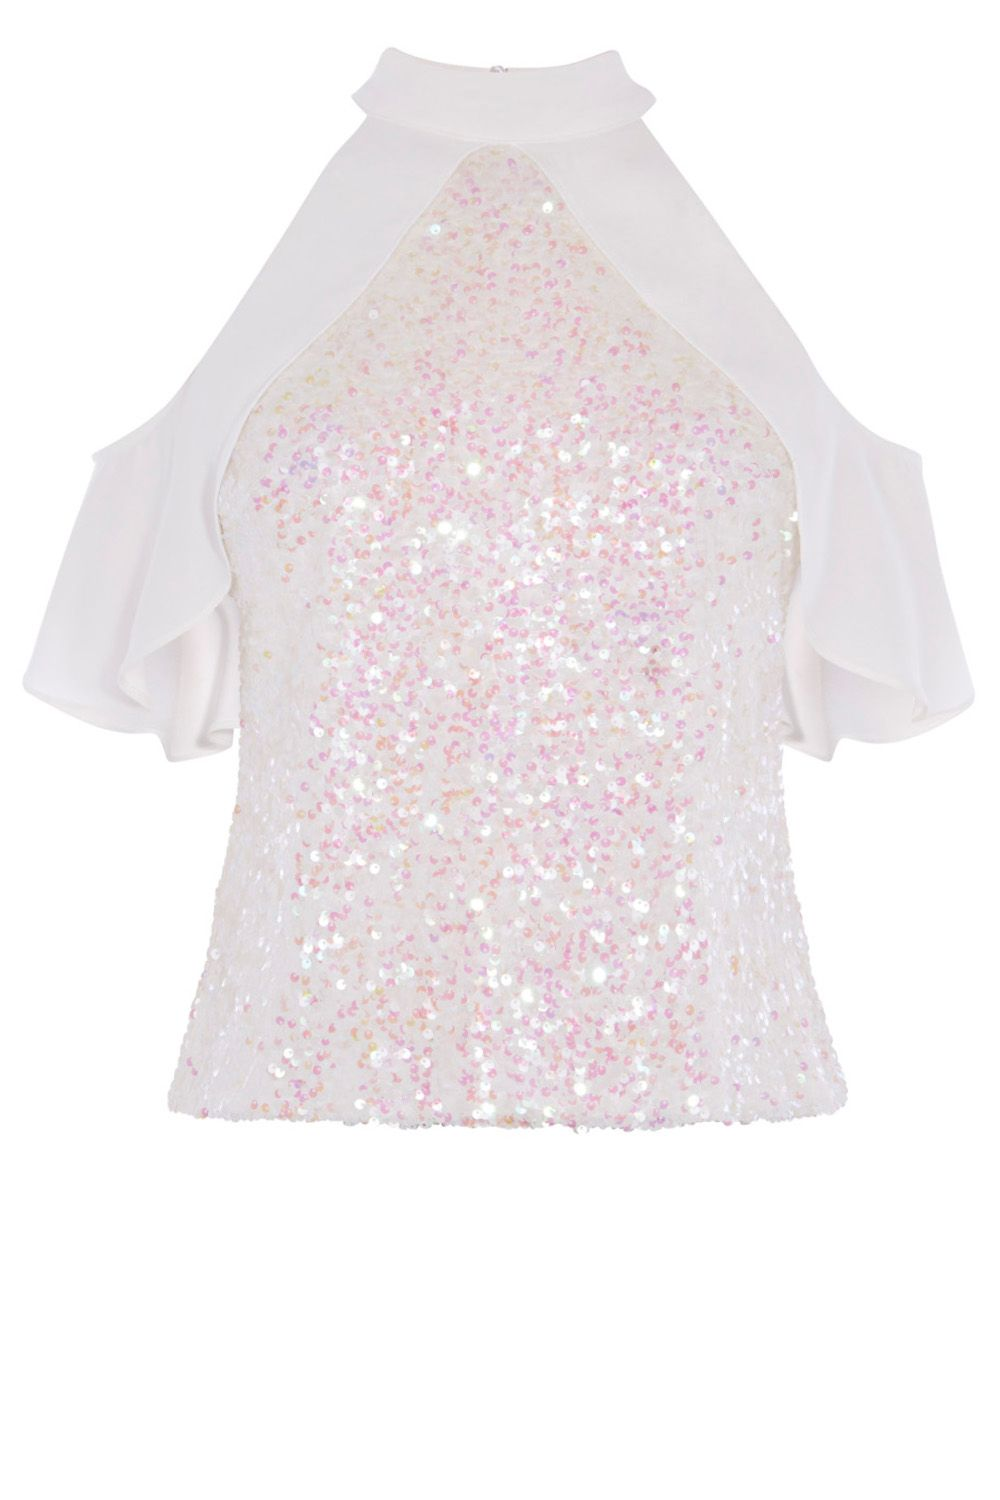 Coast Blair Sequin Top, White